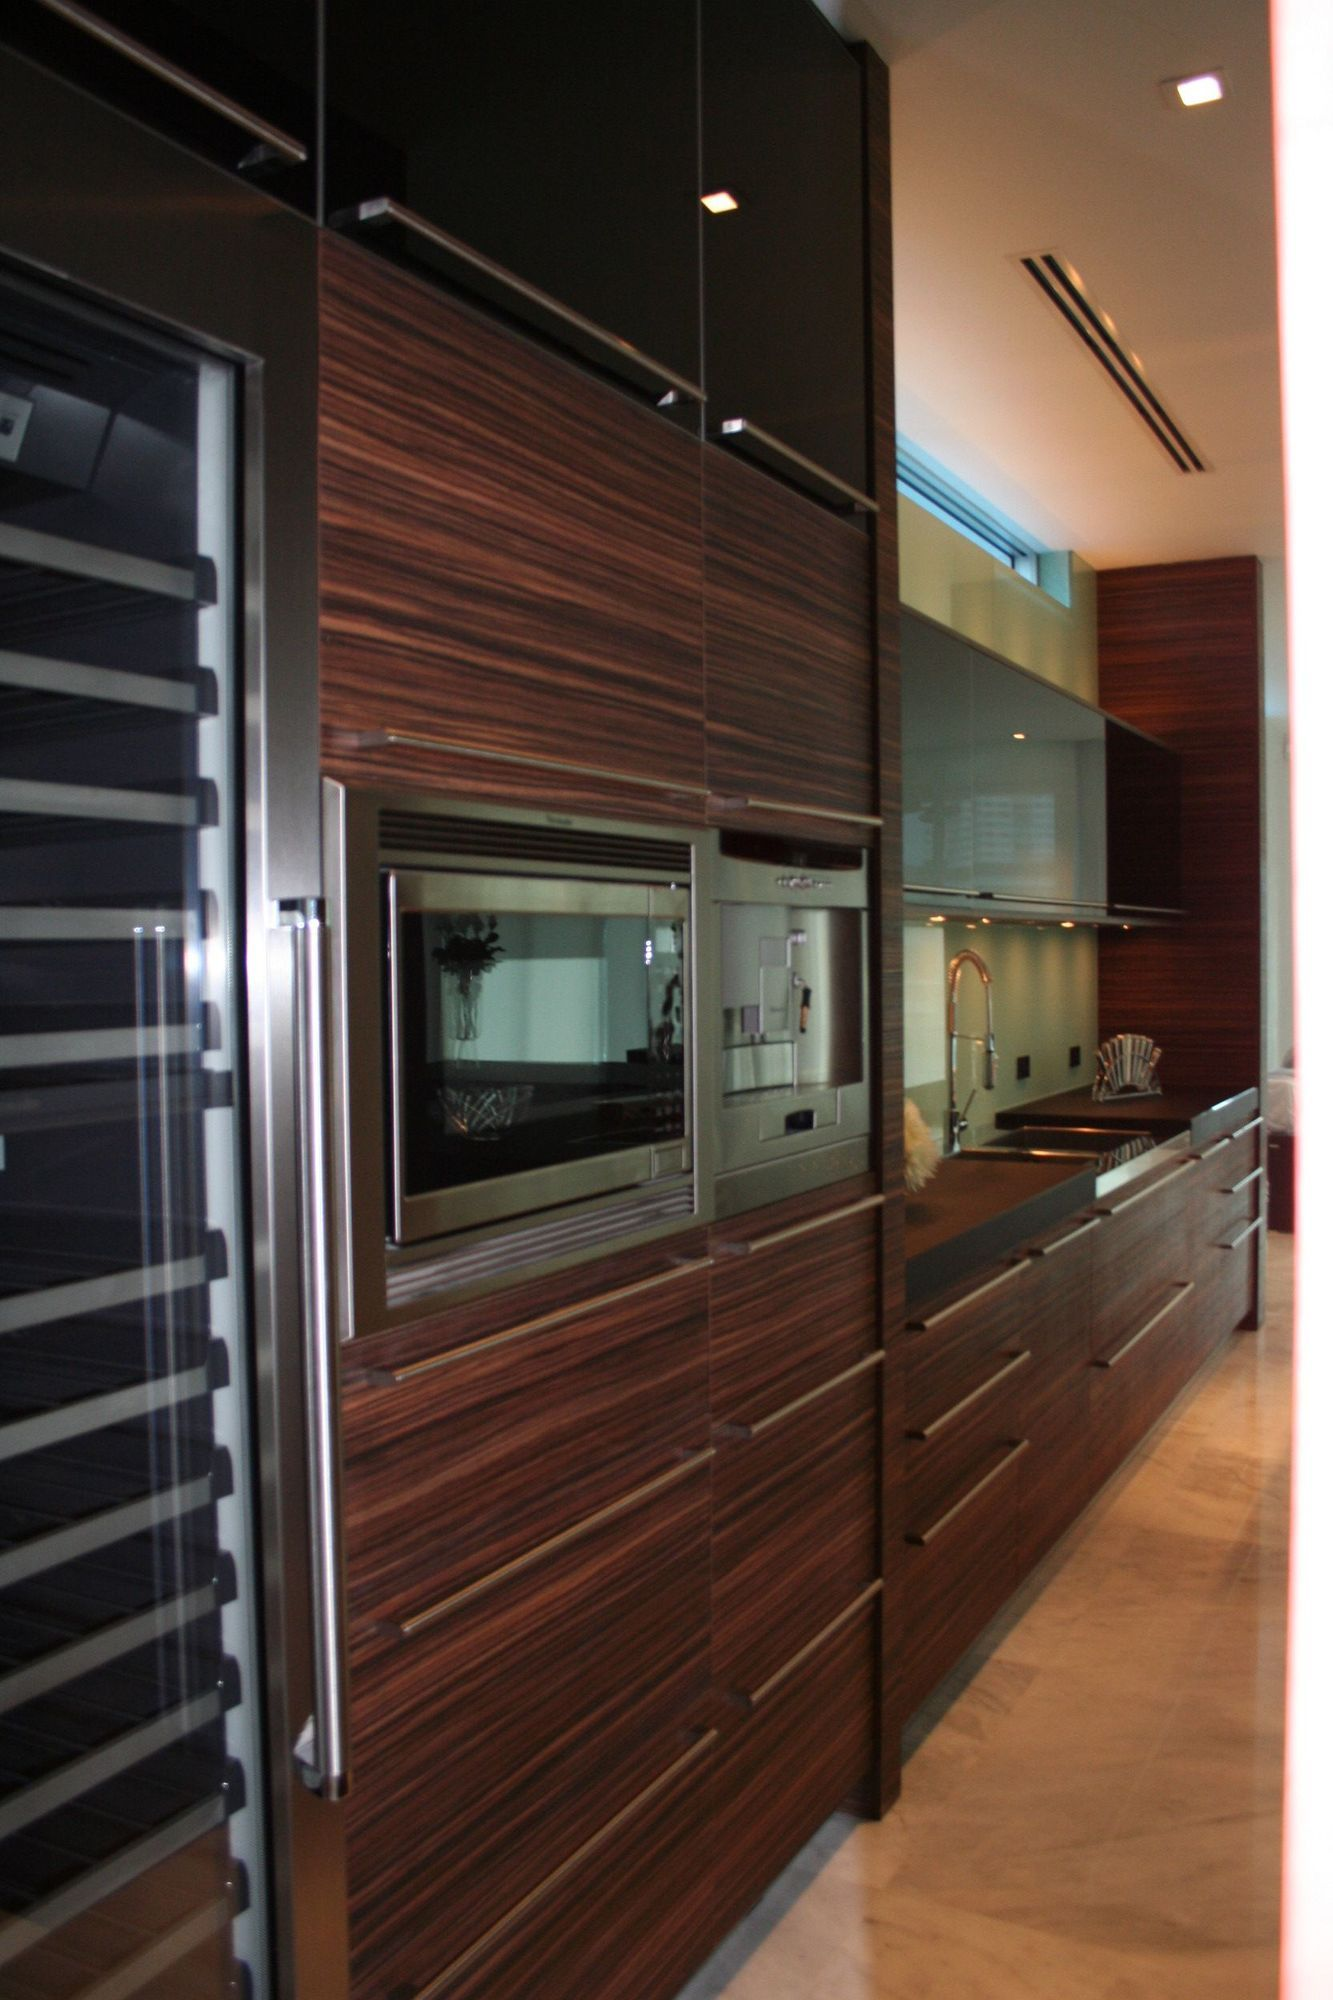 Kitchen cabinets los angeles with kitchen cabinets los angeles also